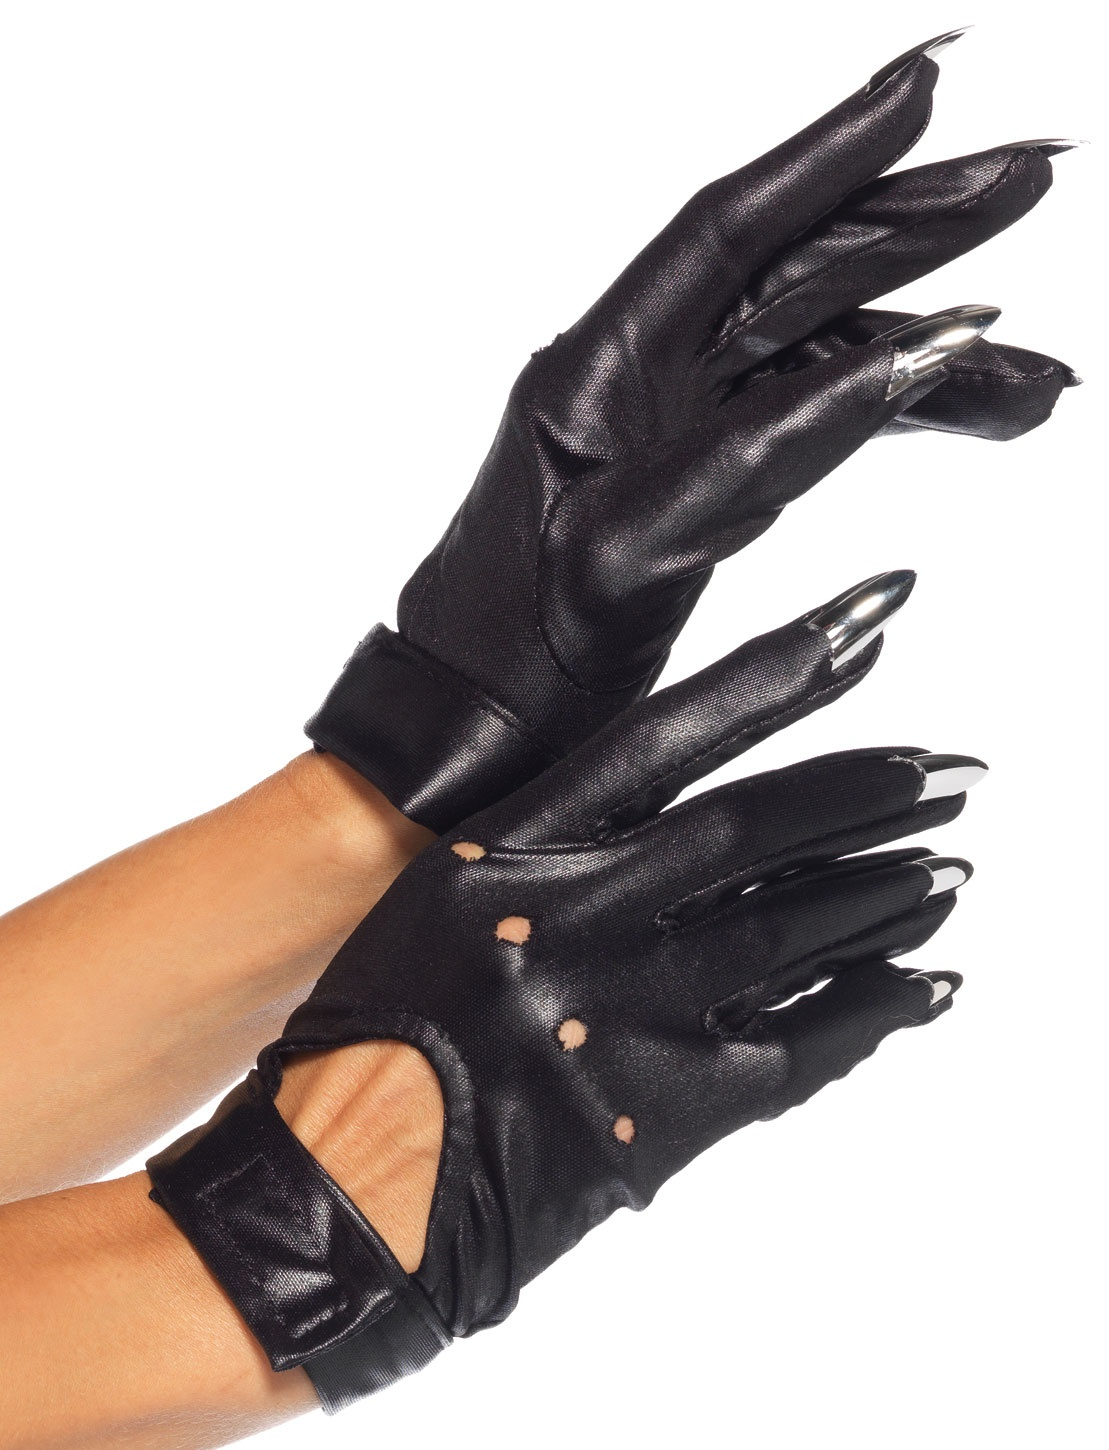 Motorcycle gloves metal - Accessories Costume Gloves Motorcycle